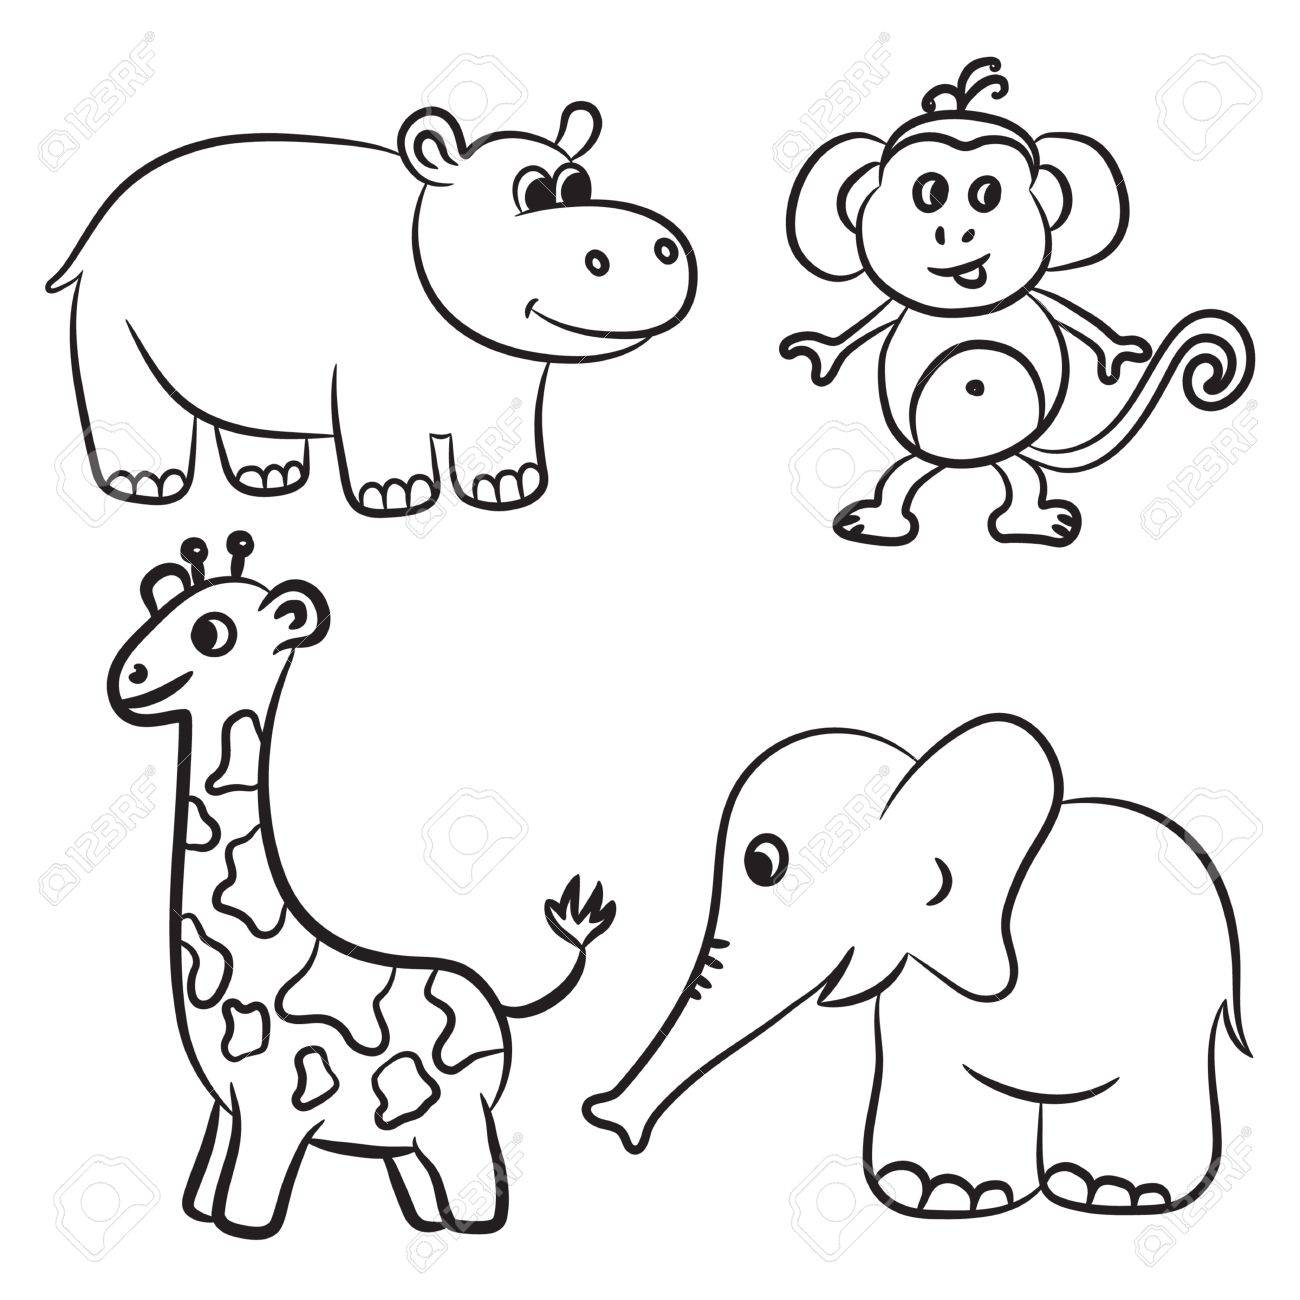 1300x1300 Cute Outlined Zoo Animals Collection. Royalty Free Cliparts